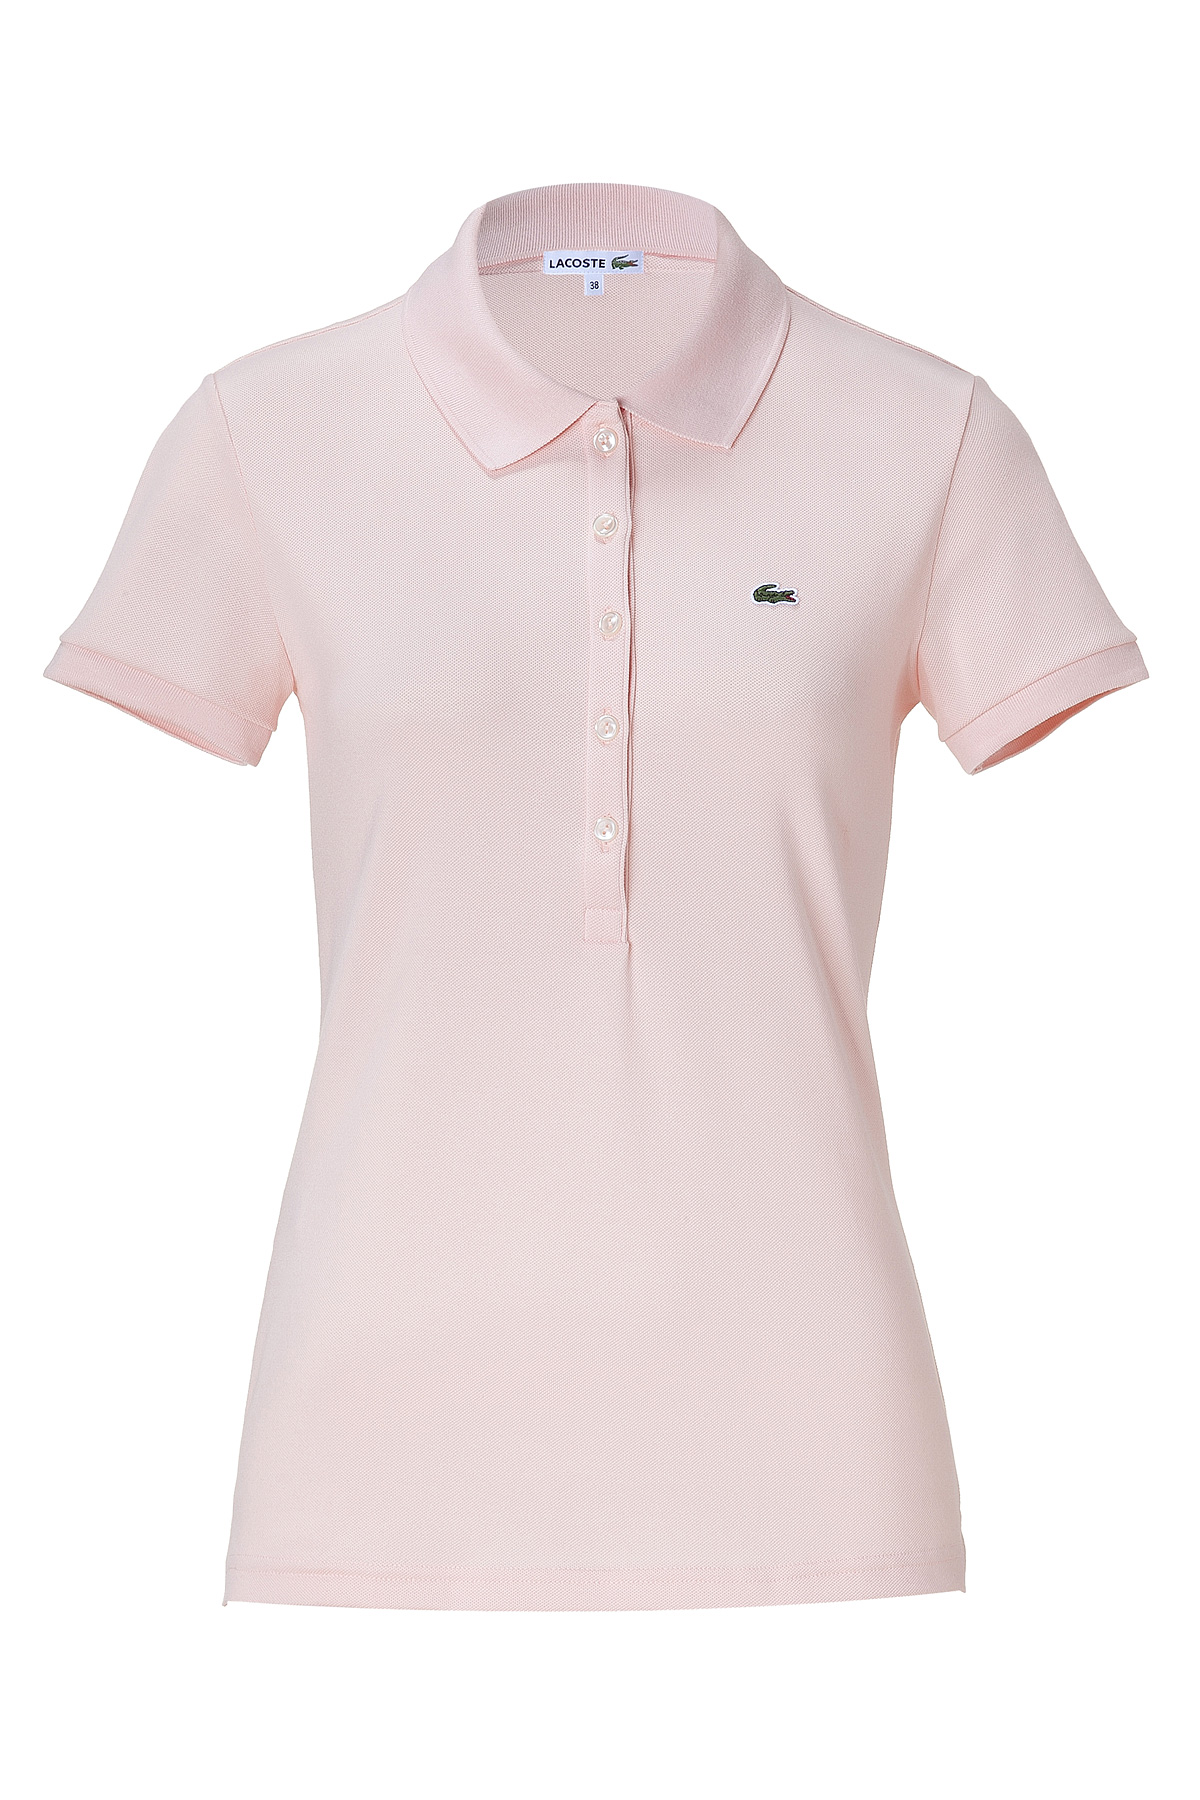 6f1aa815caf1 Lyst - Lacoste Pale Rose Ss Polo Shirt in Pink